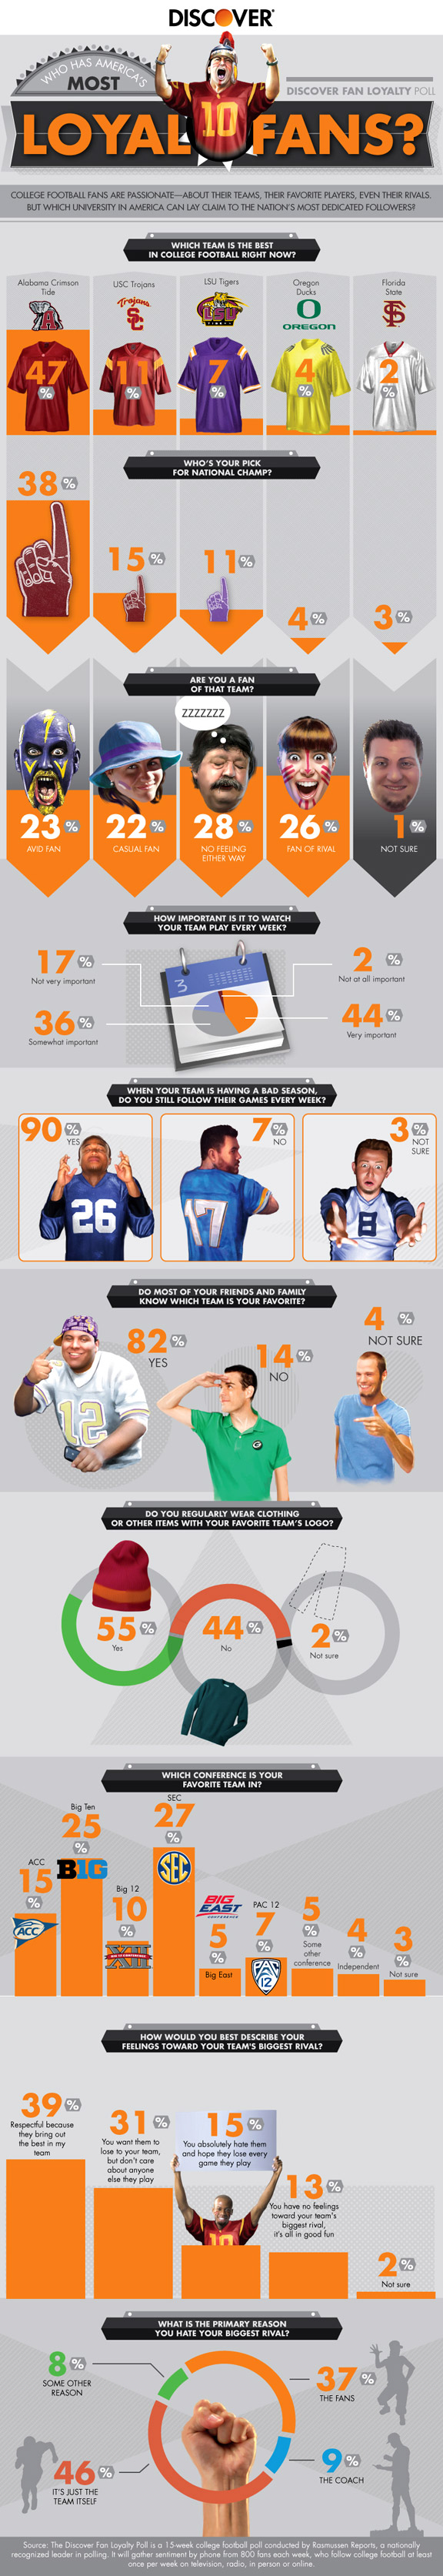 Discover fan loyalty infographic